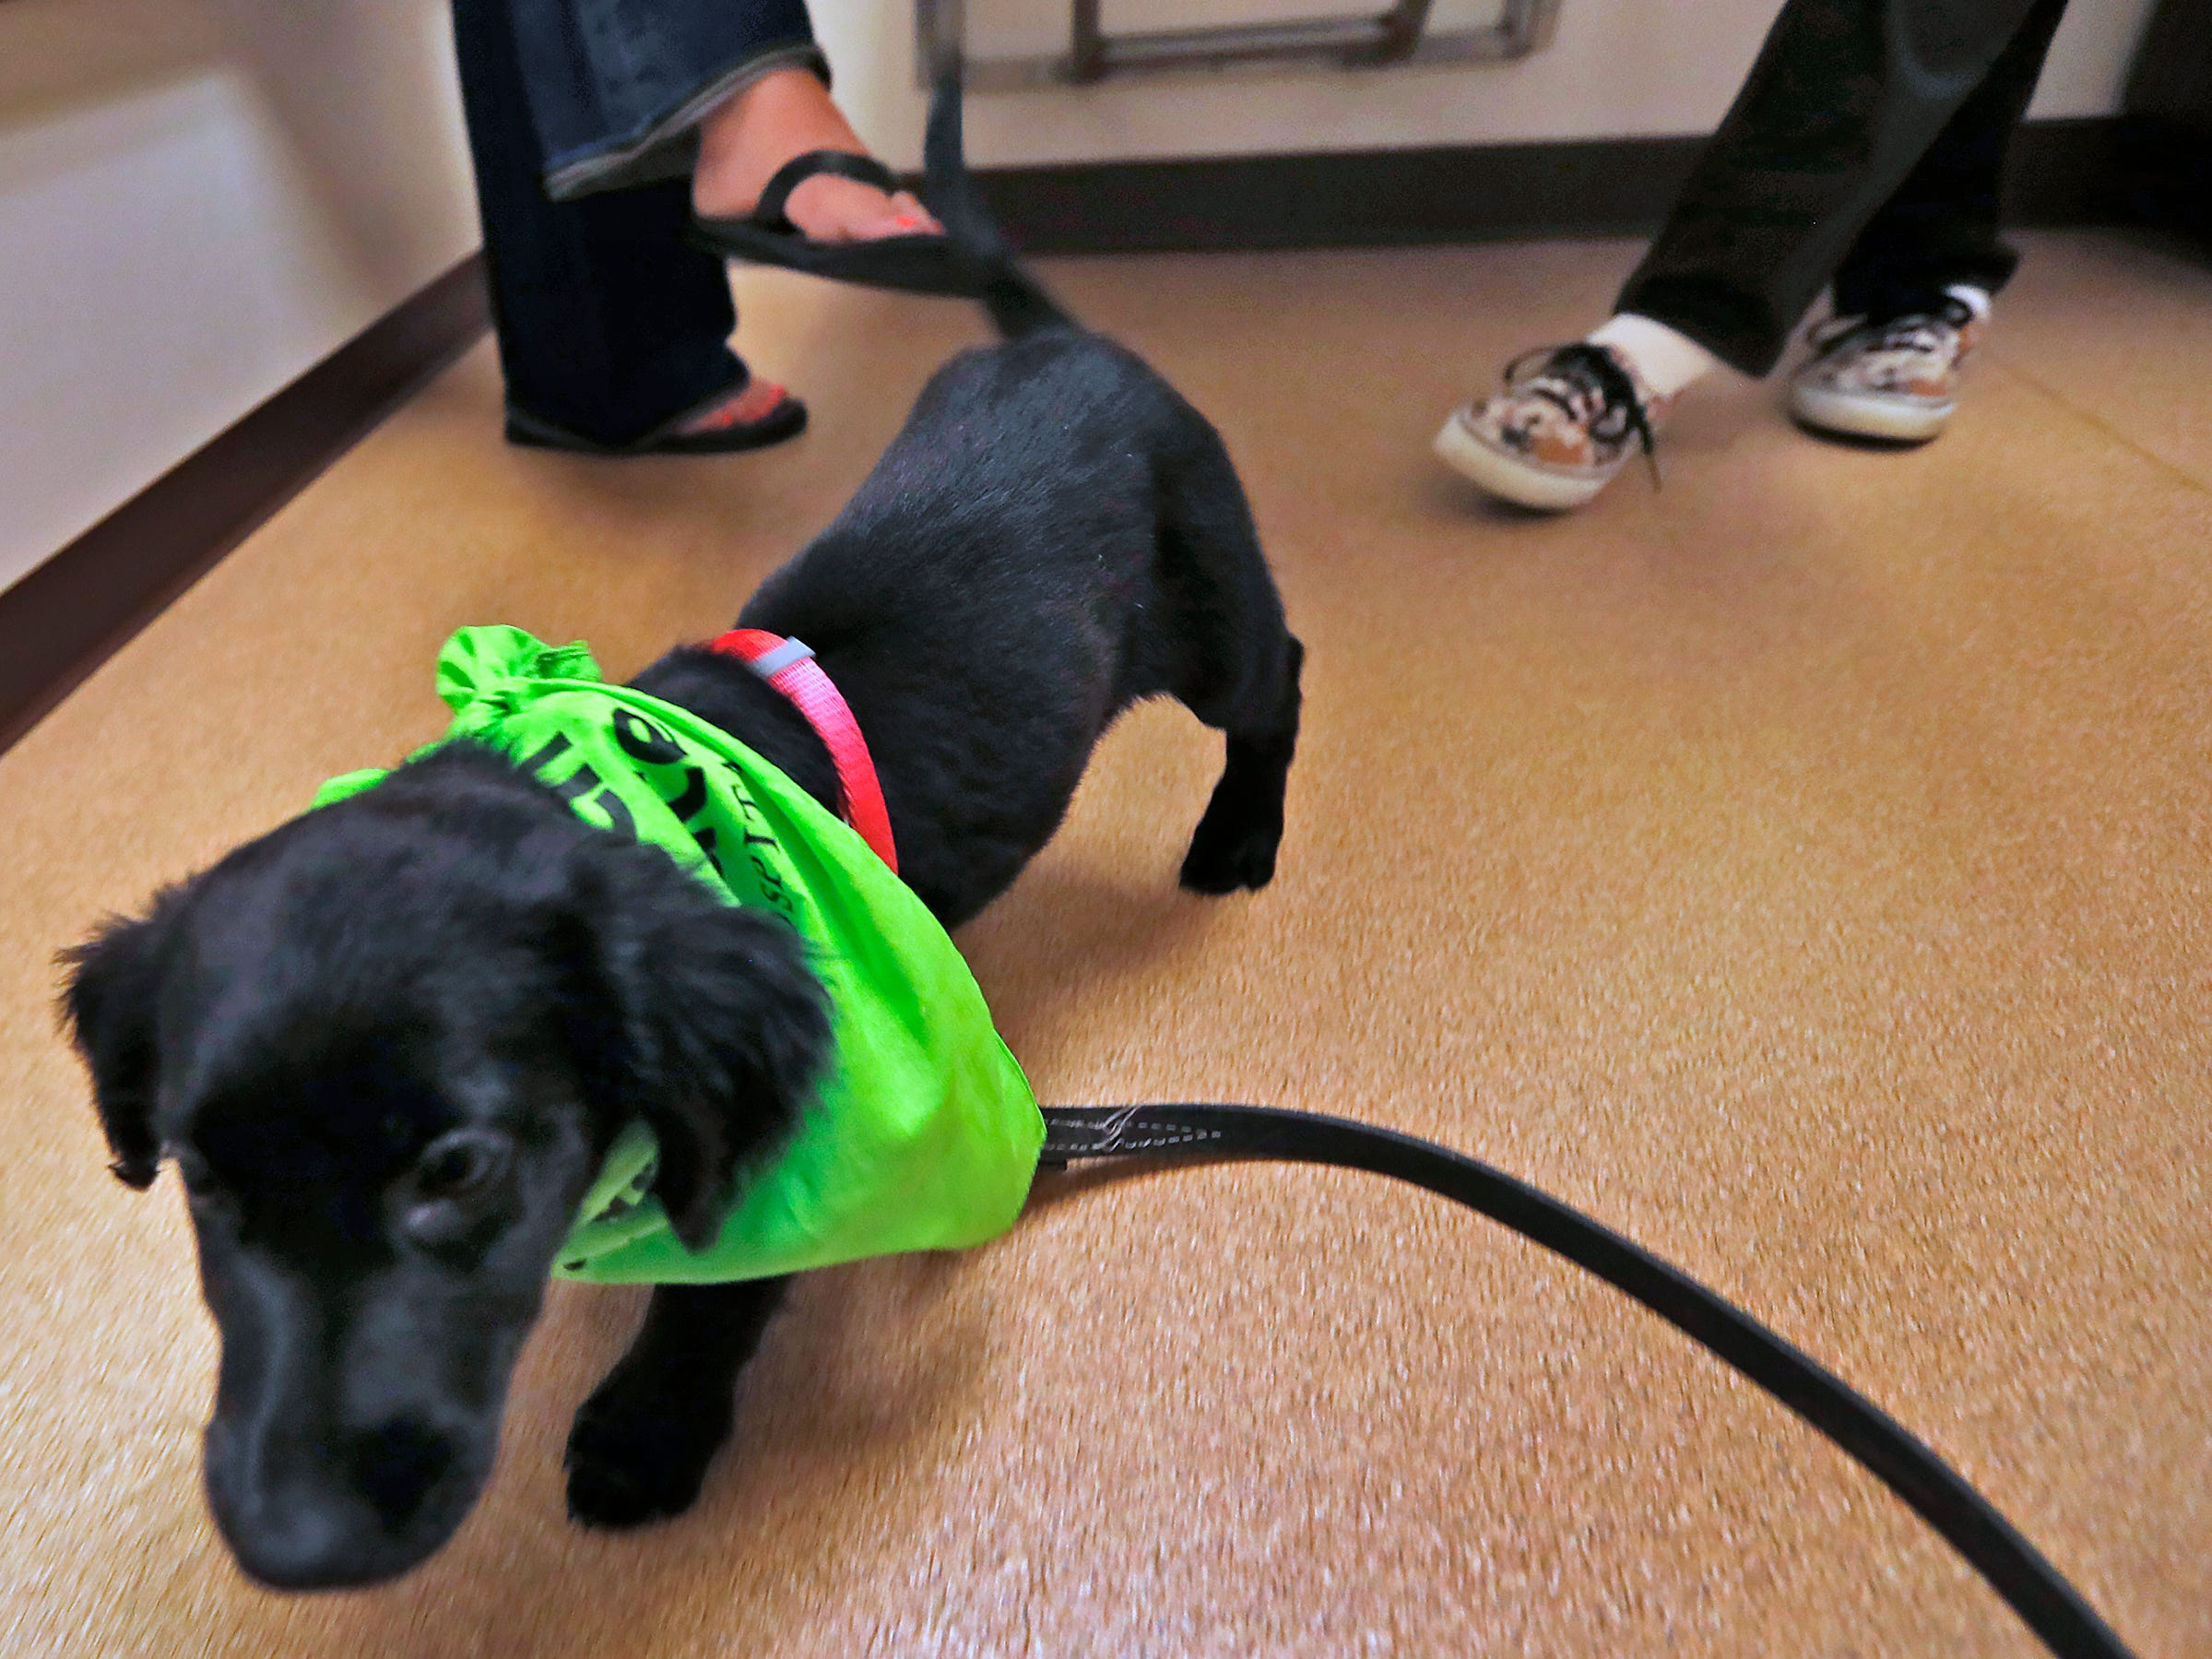 Maggie runs around the room during her appointment at Paw Patch Place Animal Hospital, Friday, Aug. 31, 2018.  The veterinary clinic is the only one in Indiana to earn special fear free certification from an international program that aims to help vets reduce anxiety for pets prone to feel stressed in their offices.  Sprayed on this puppy's bandana is a dog pheromone used to calm dogs.